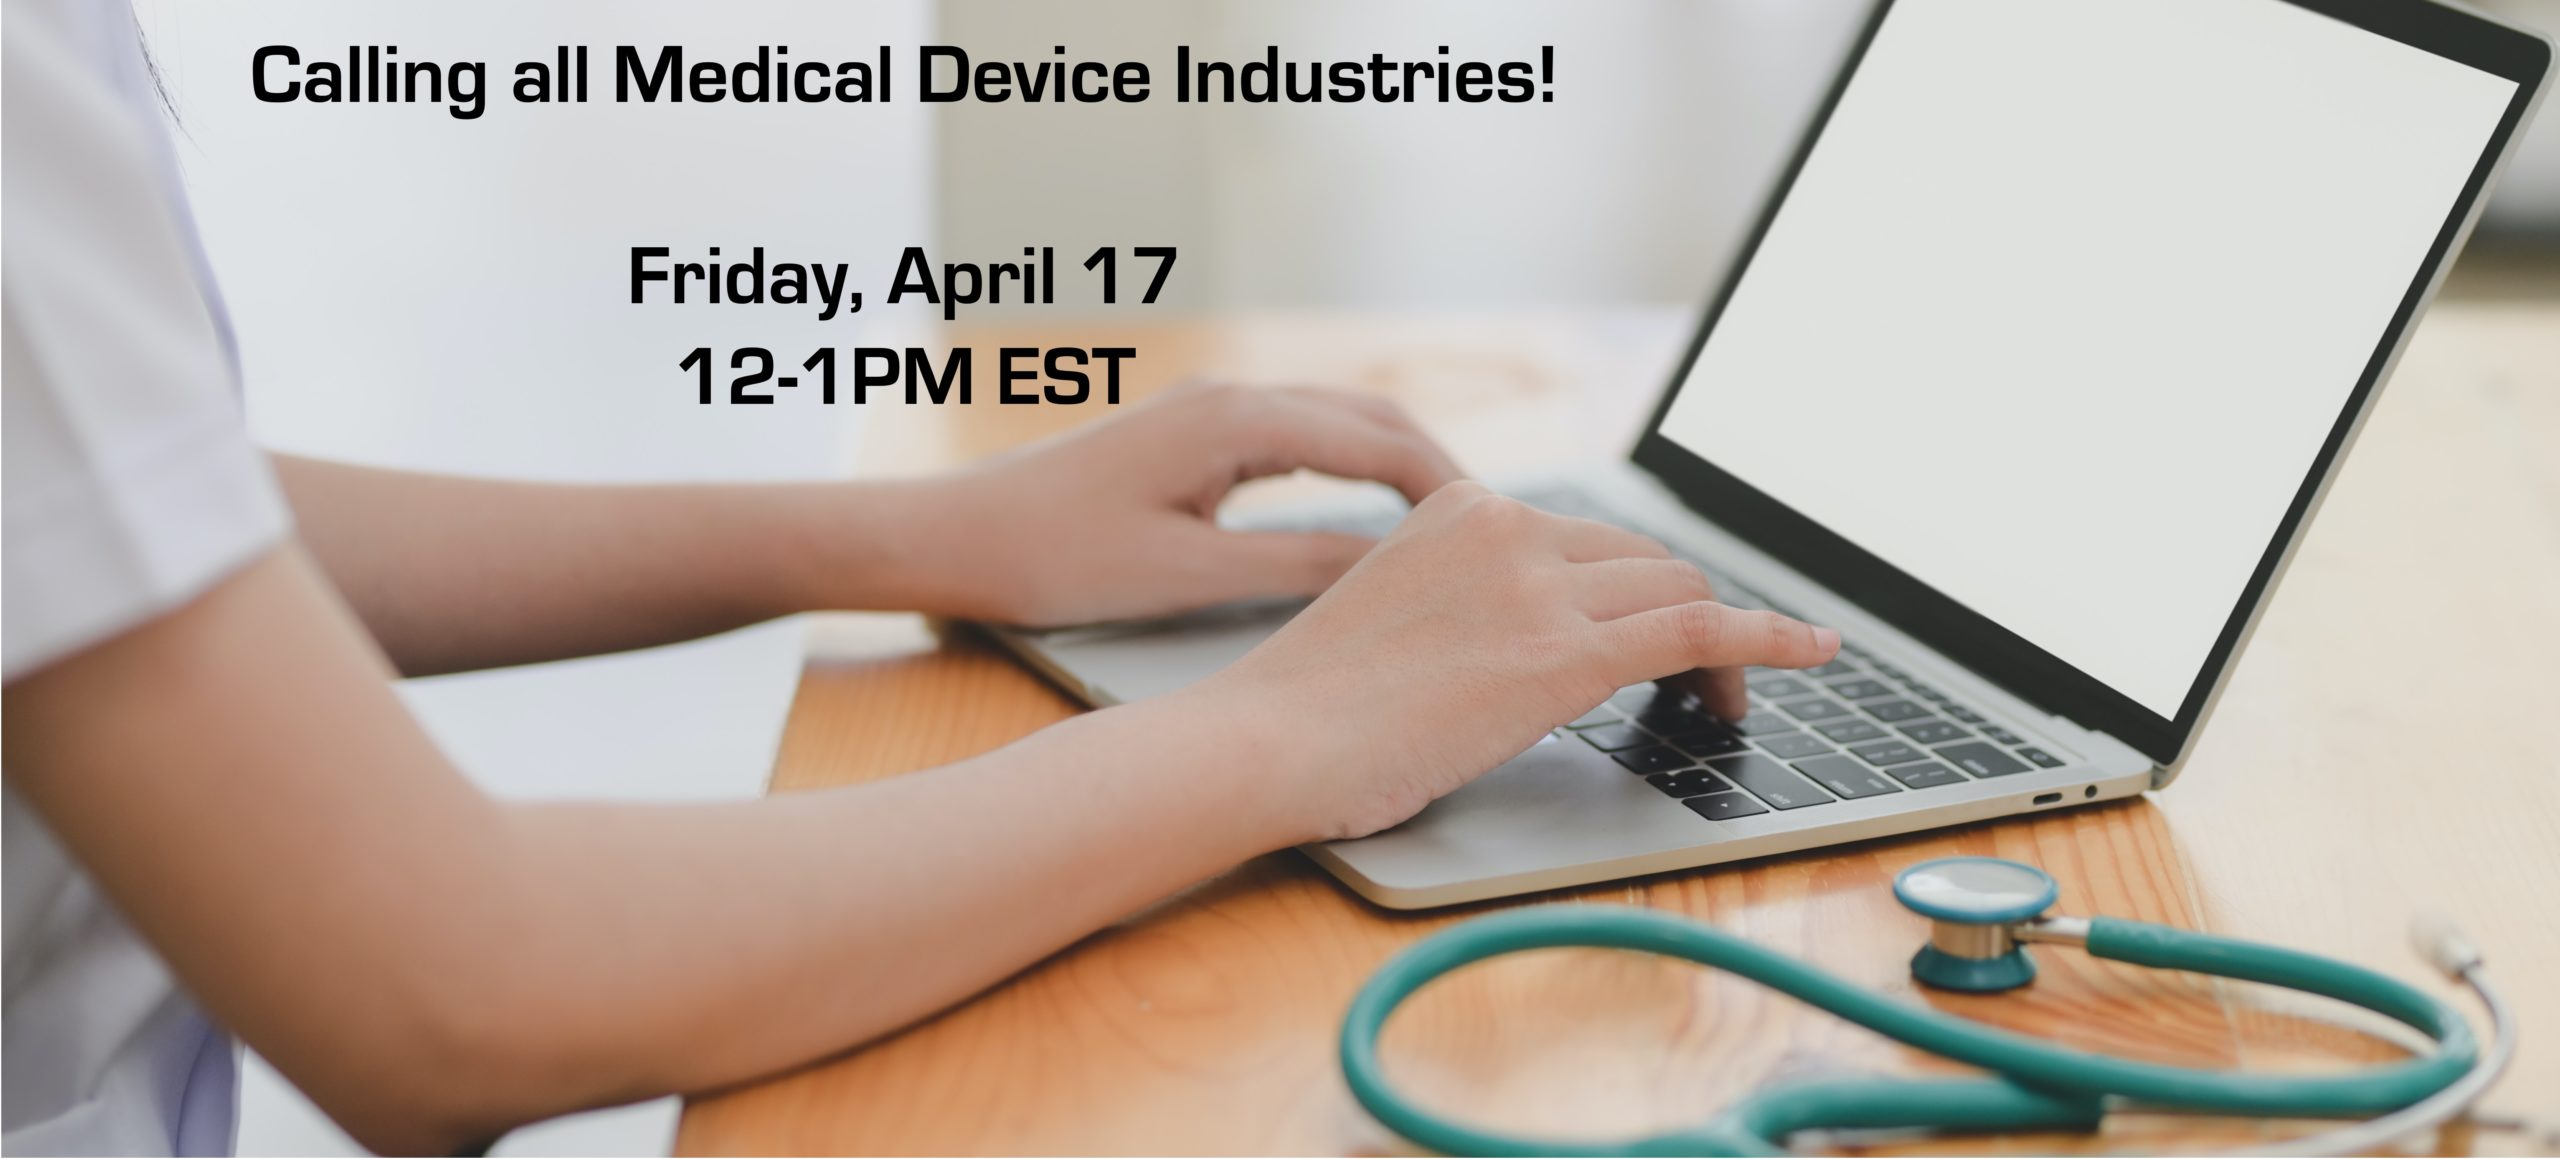 Calling All Medical Device Industries on April 17, 2020